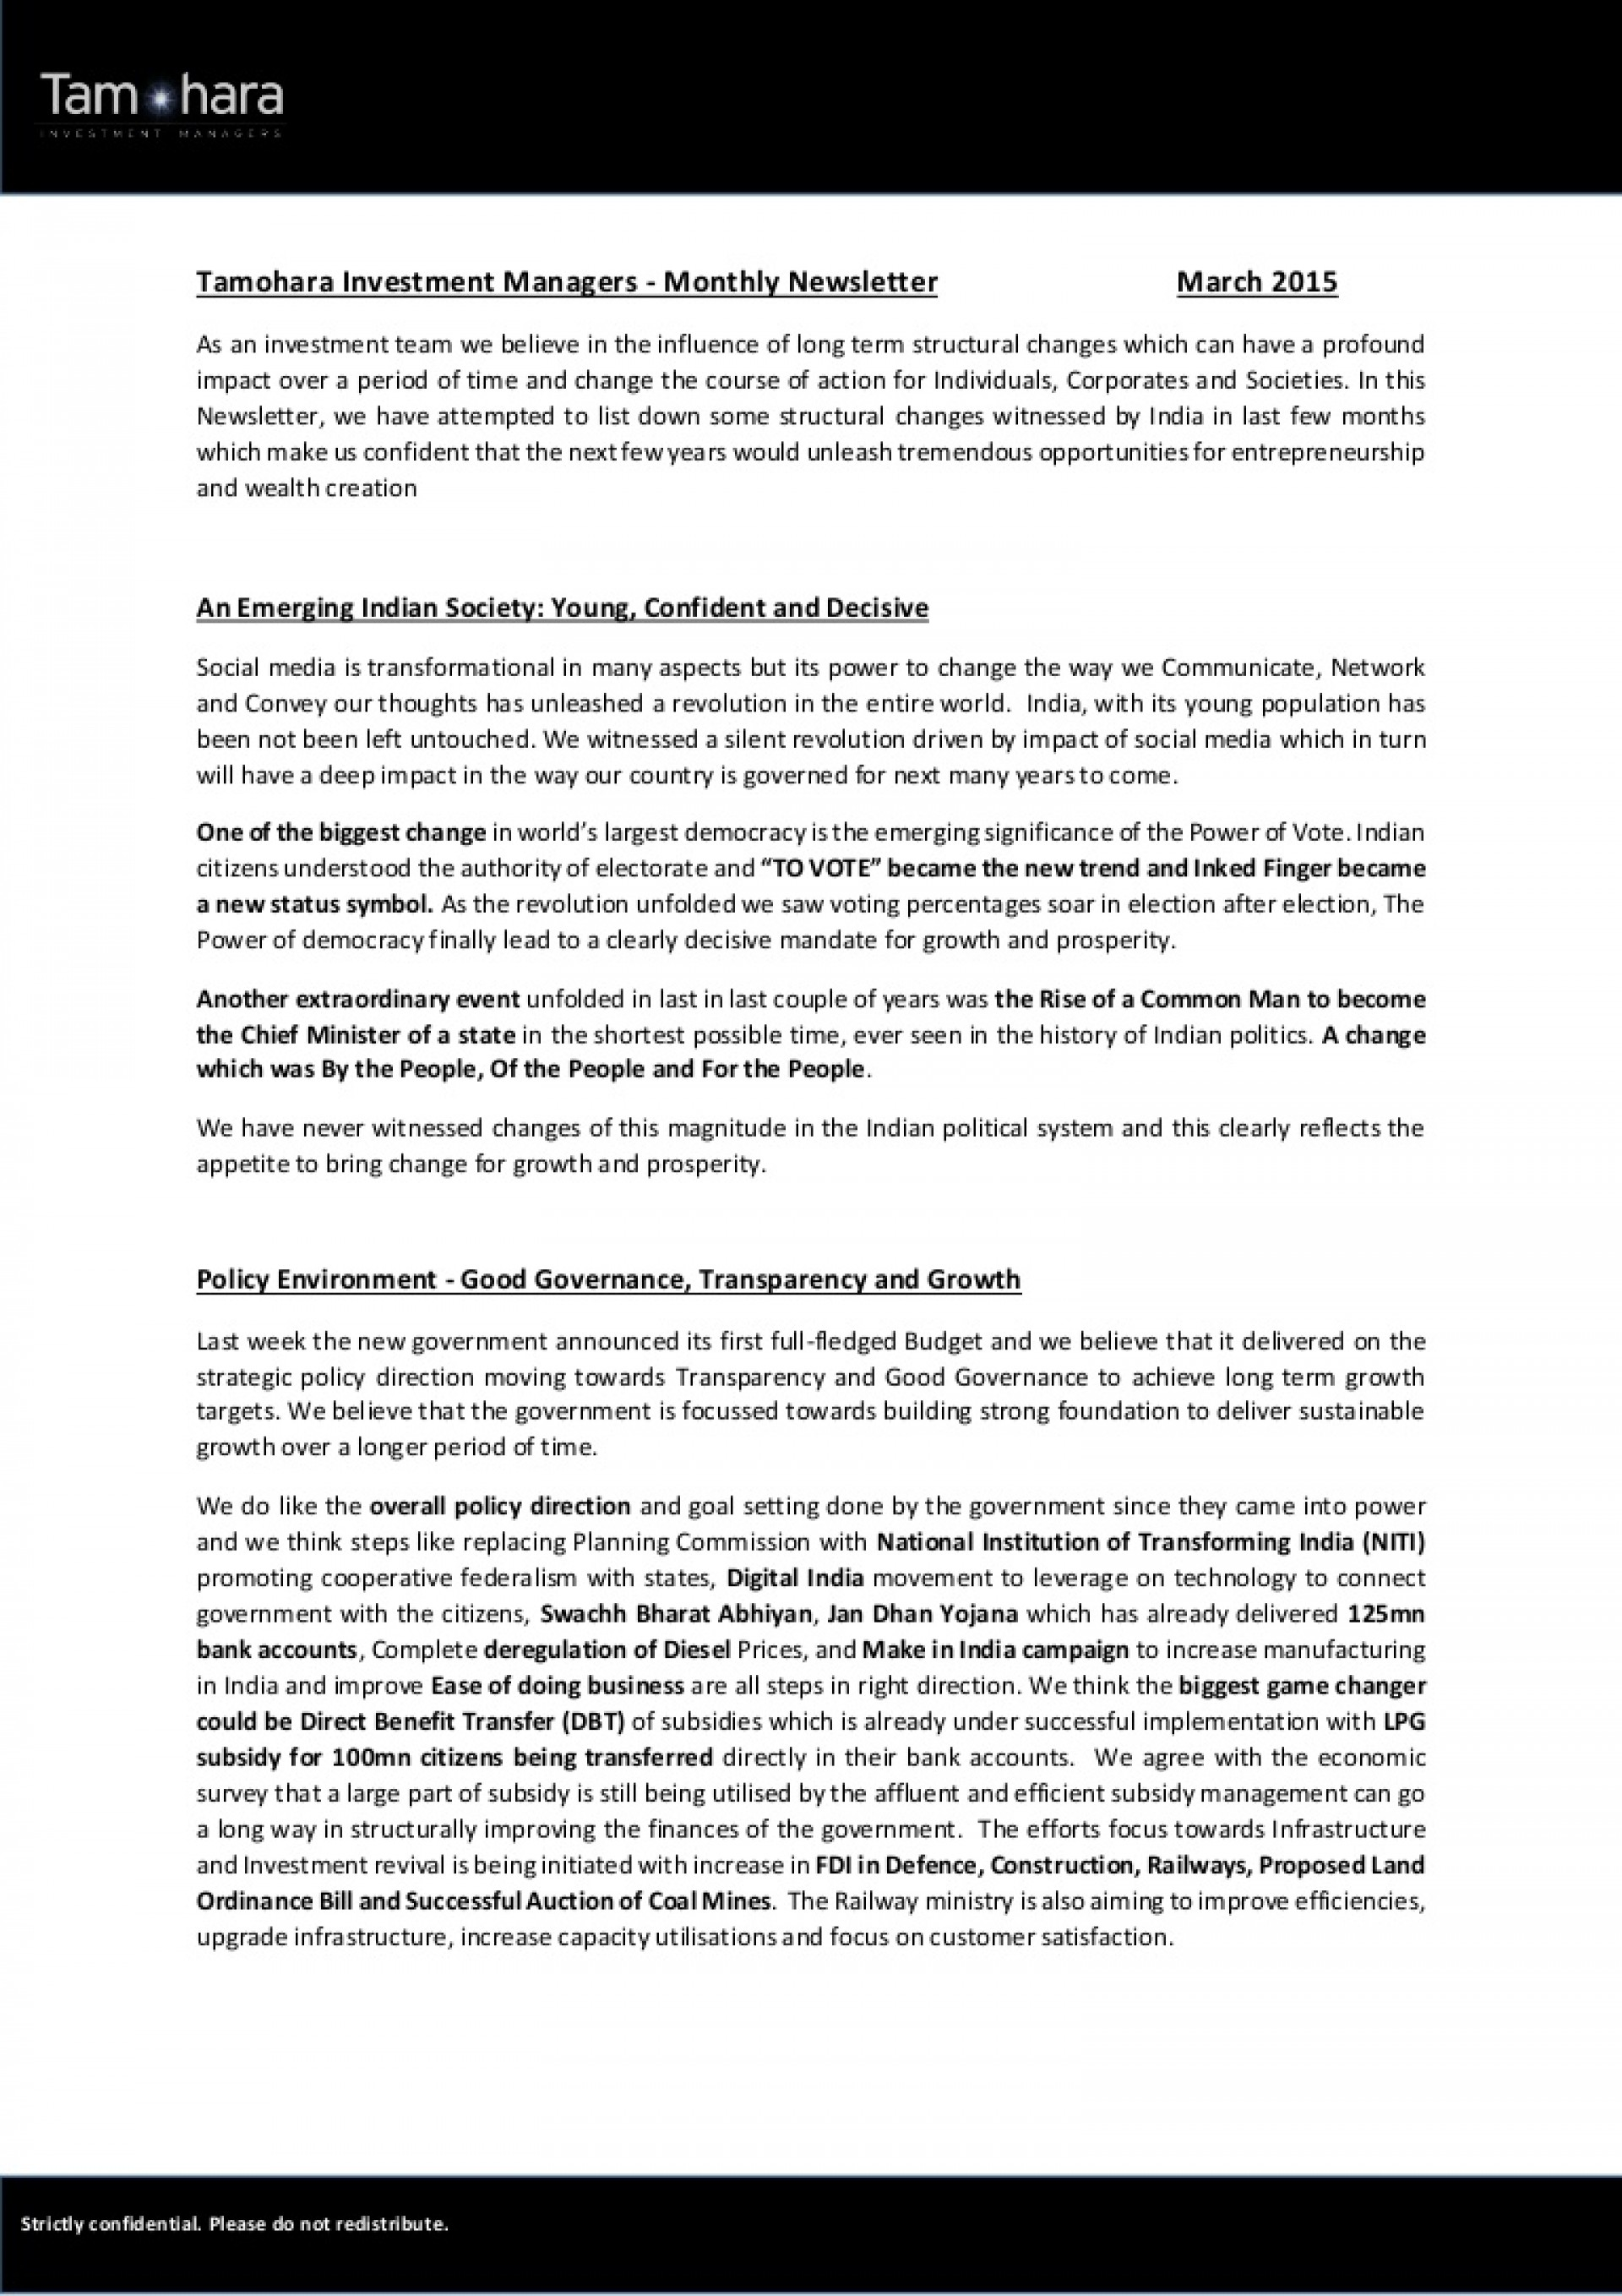 012 Essay Example How To Make An Longer Tamoharainvestmentnewsletter Mar2015 Conversion Gate01 Thumbnail Unusual Word Count With Periods Period Trick Google Docs 1920